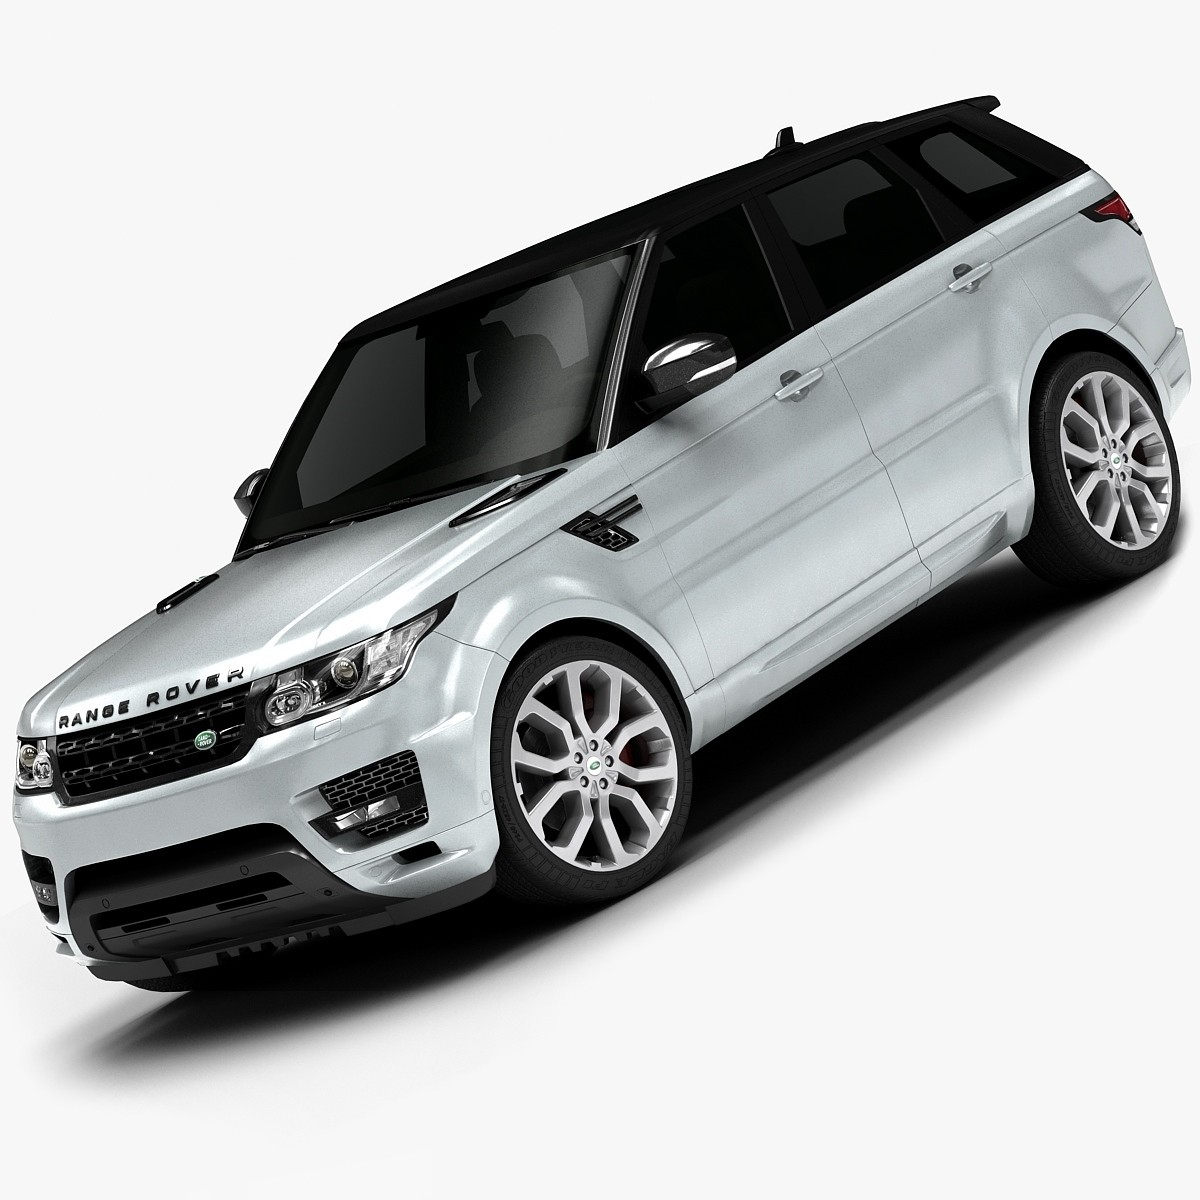 The introduction of Land Rover Approved Service Plans for New Vehicles